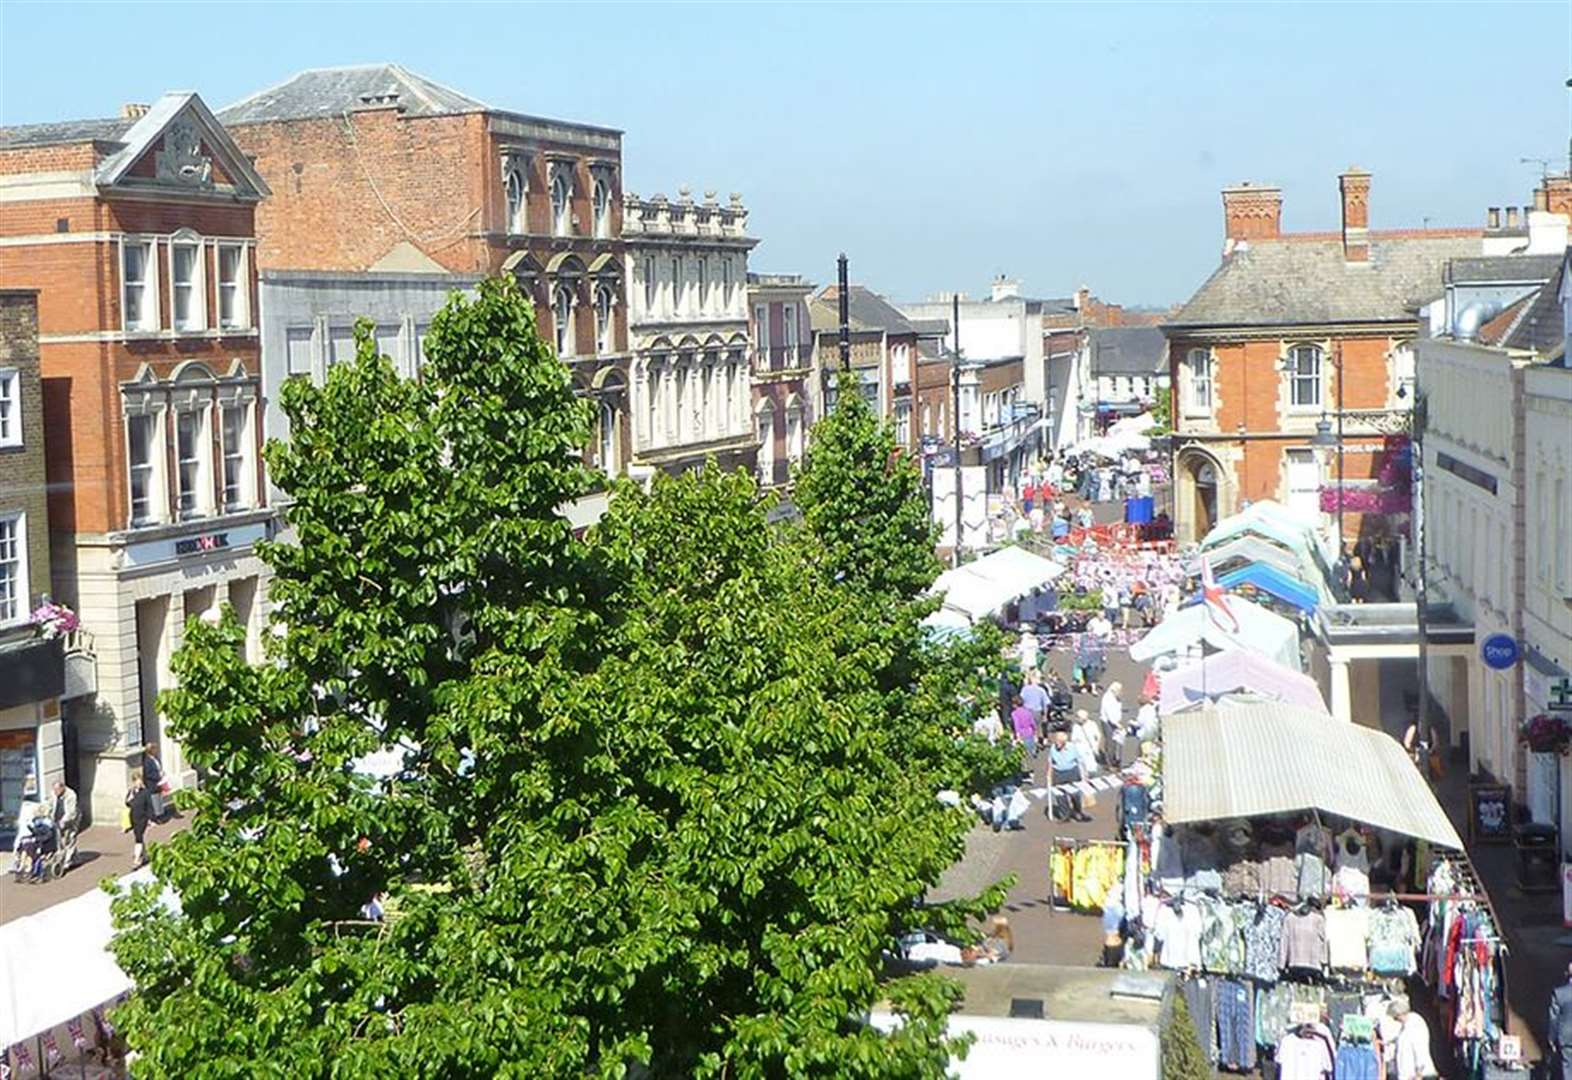 Focus on markets in Spalding, Holbeach, Crowland and Long Sutton